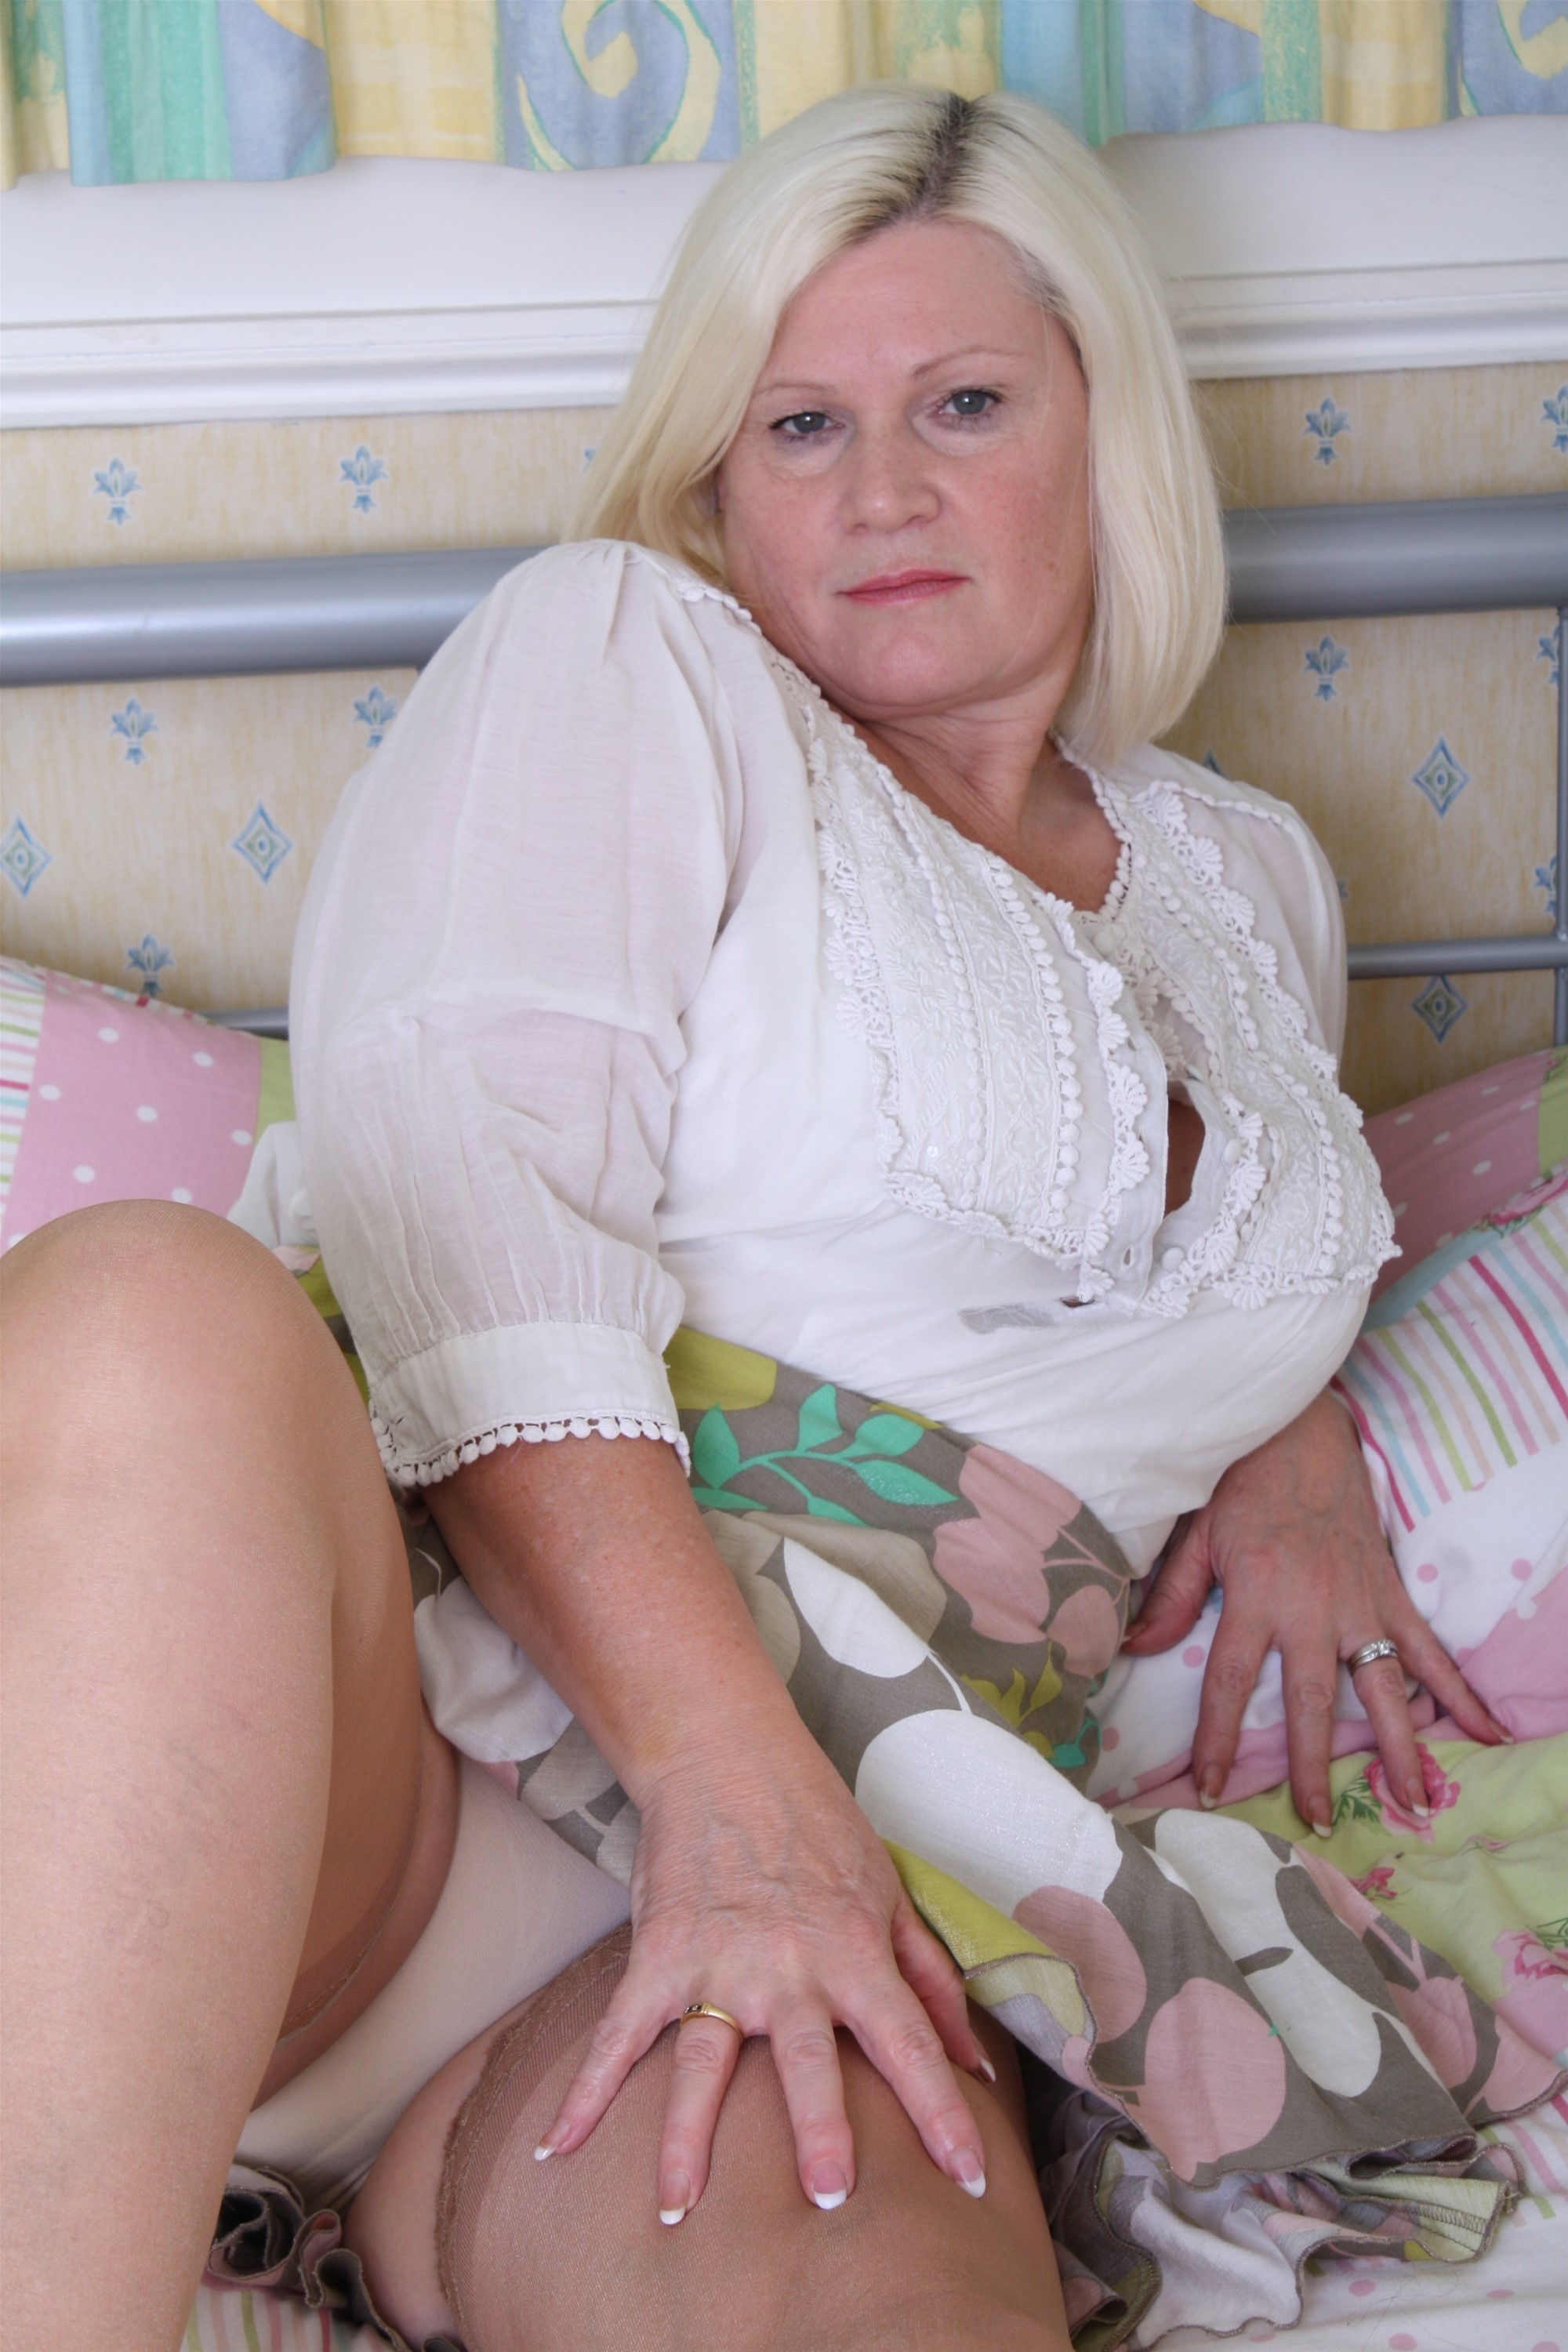 bbw-lacey-mature-nl-nude-natural-girl-galleries